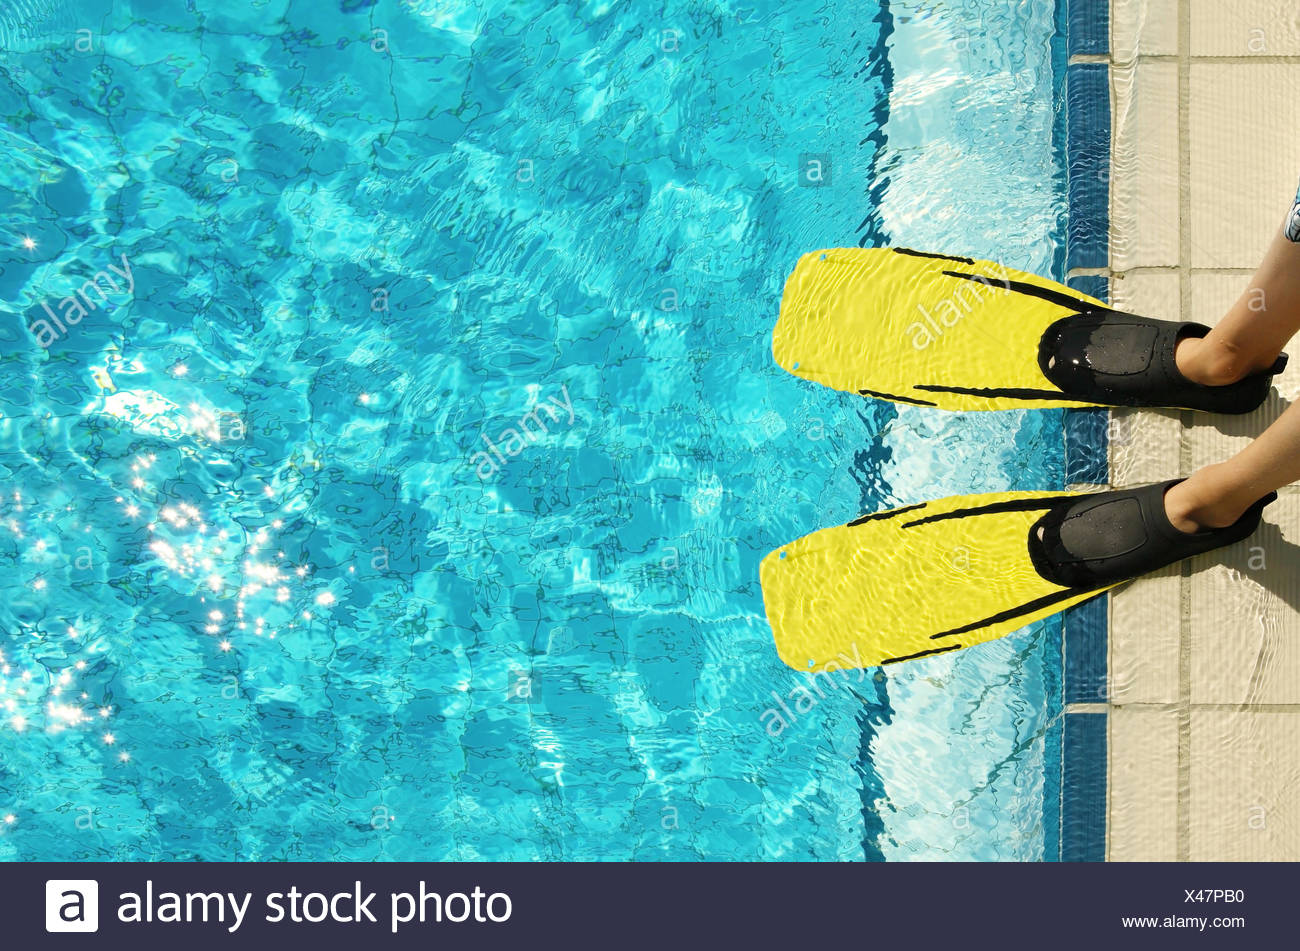 swimming pool,pool edge,fins - Stock Image